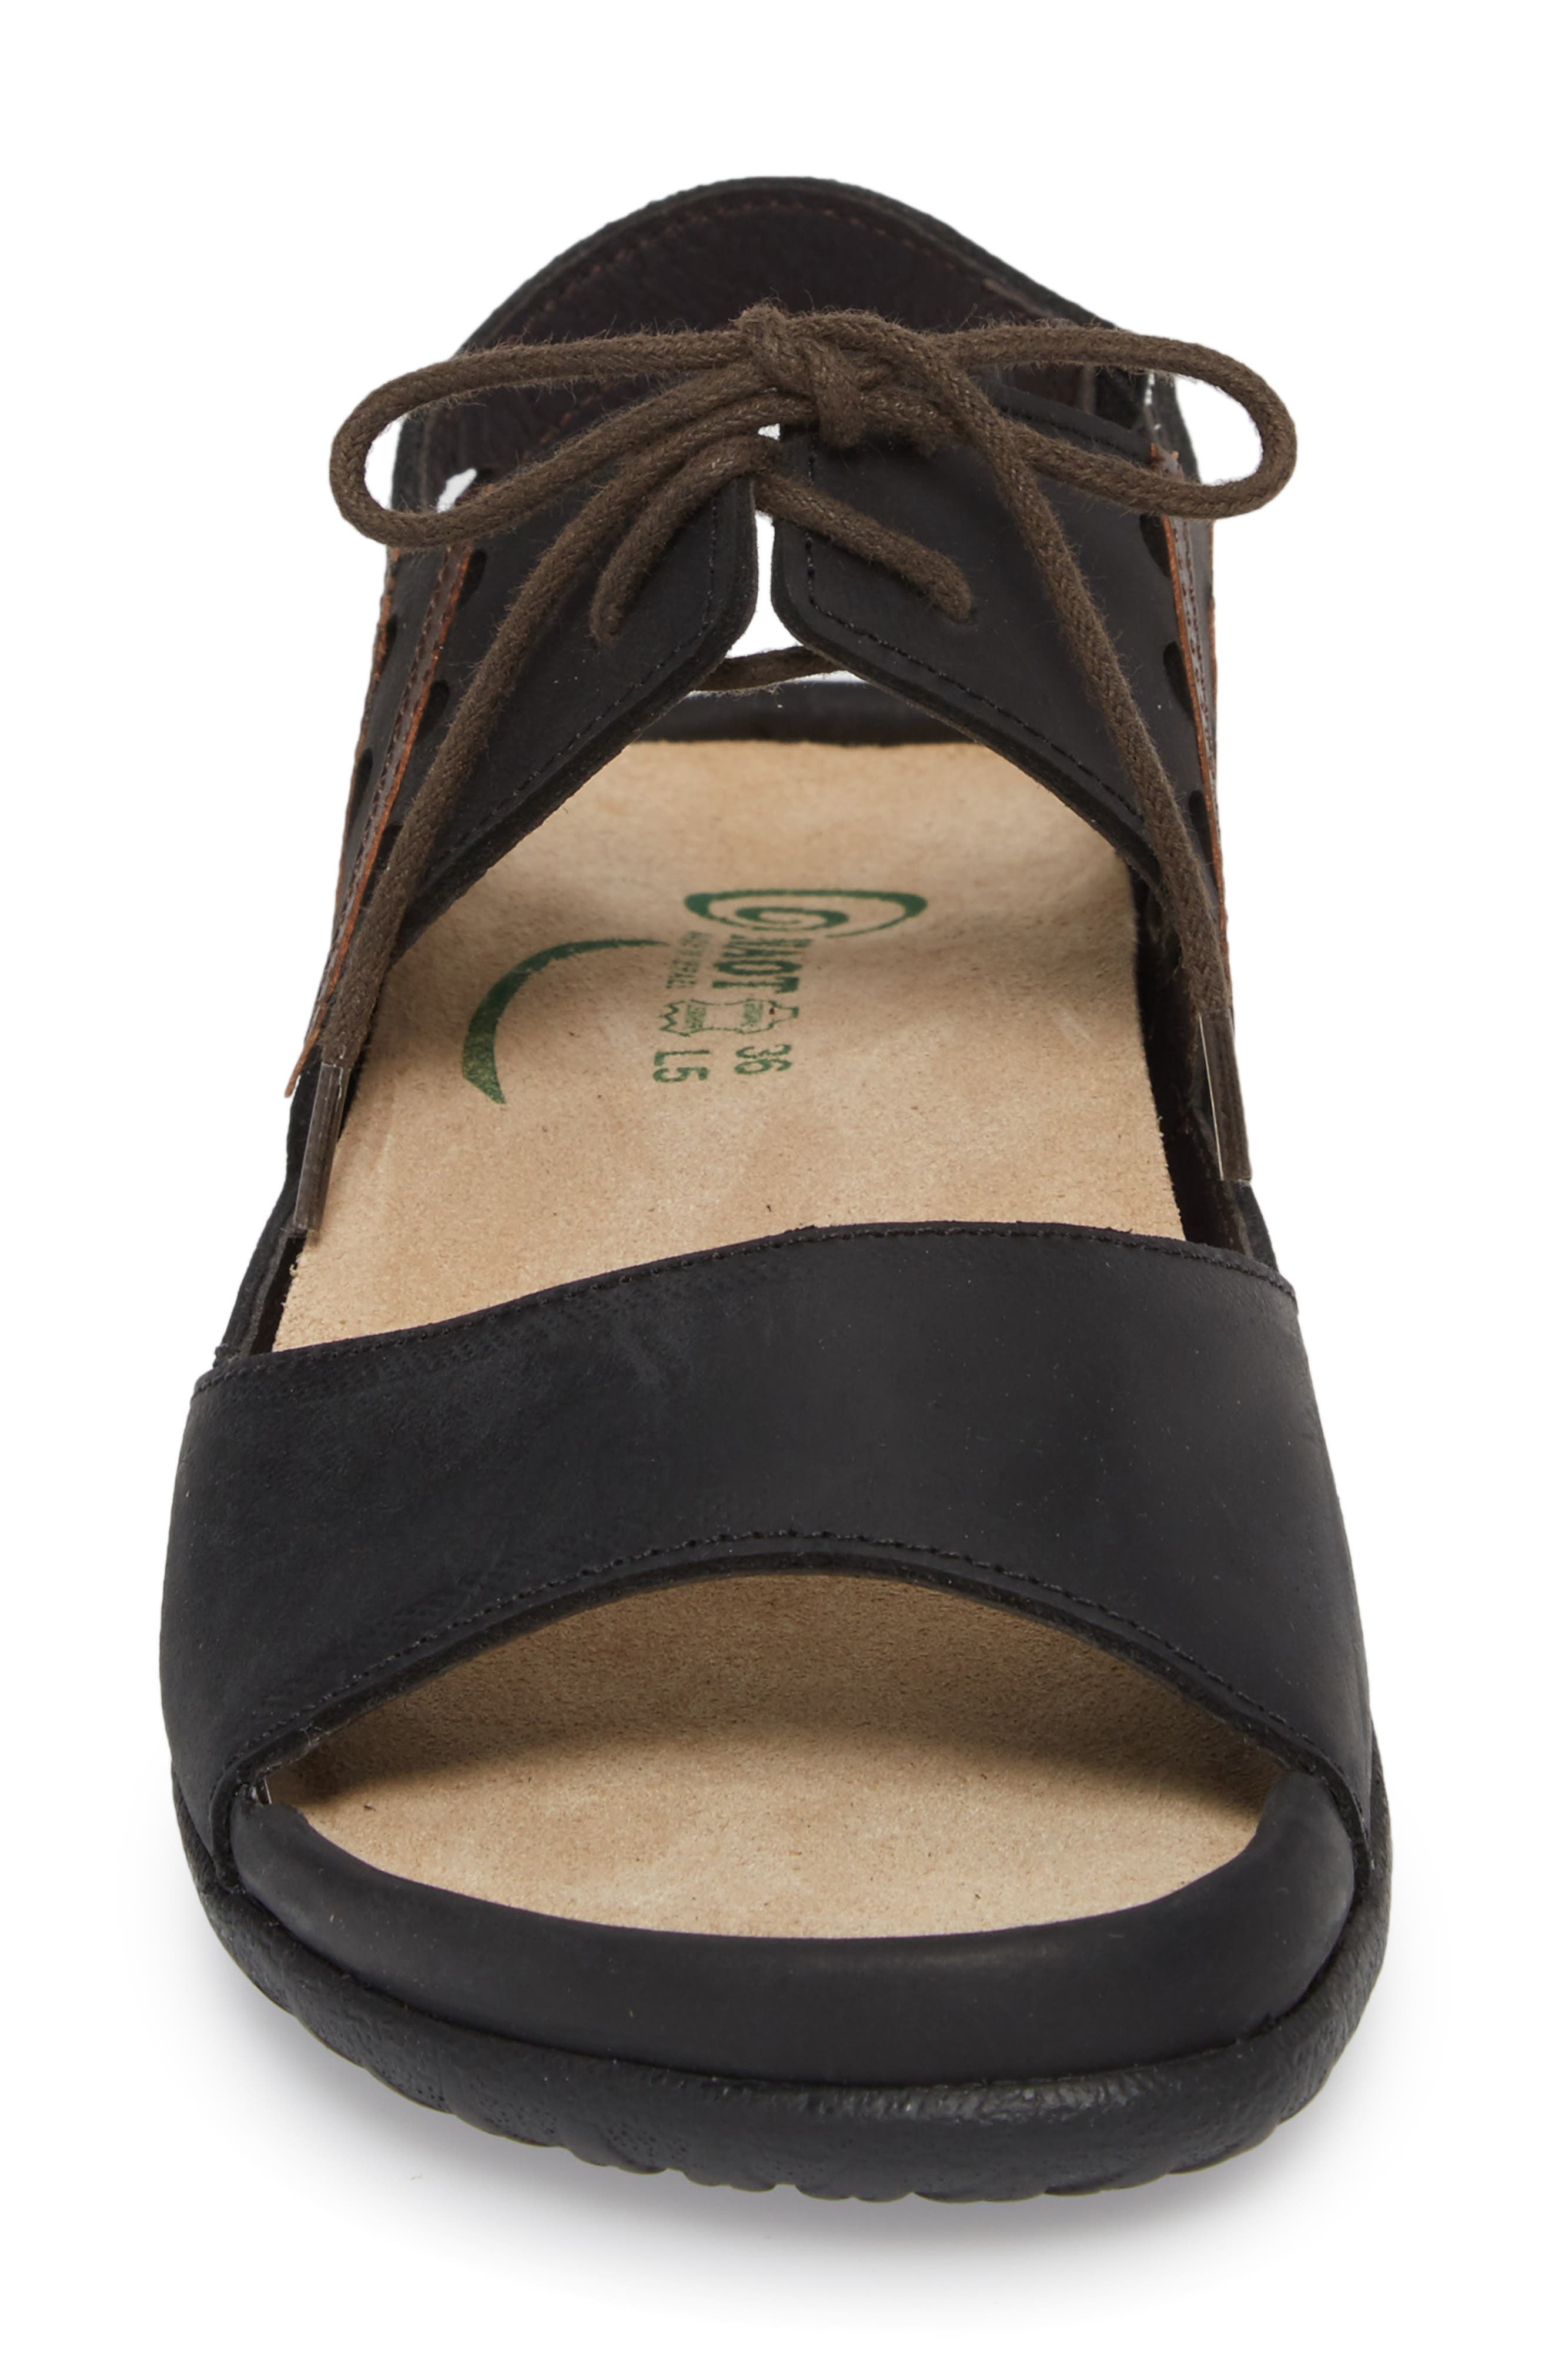 NAOT, Mangere Sandal, Alternate thumbnail 4, color, OILY COAL NUBUCK